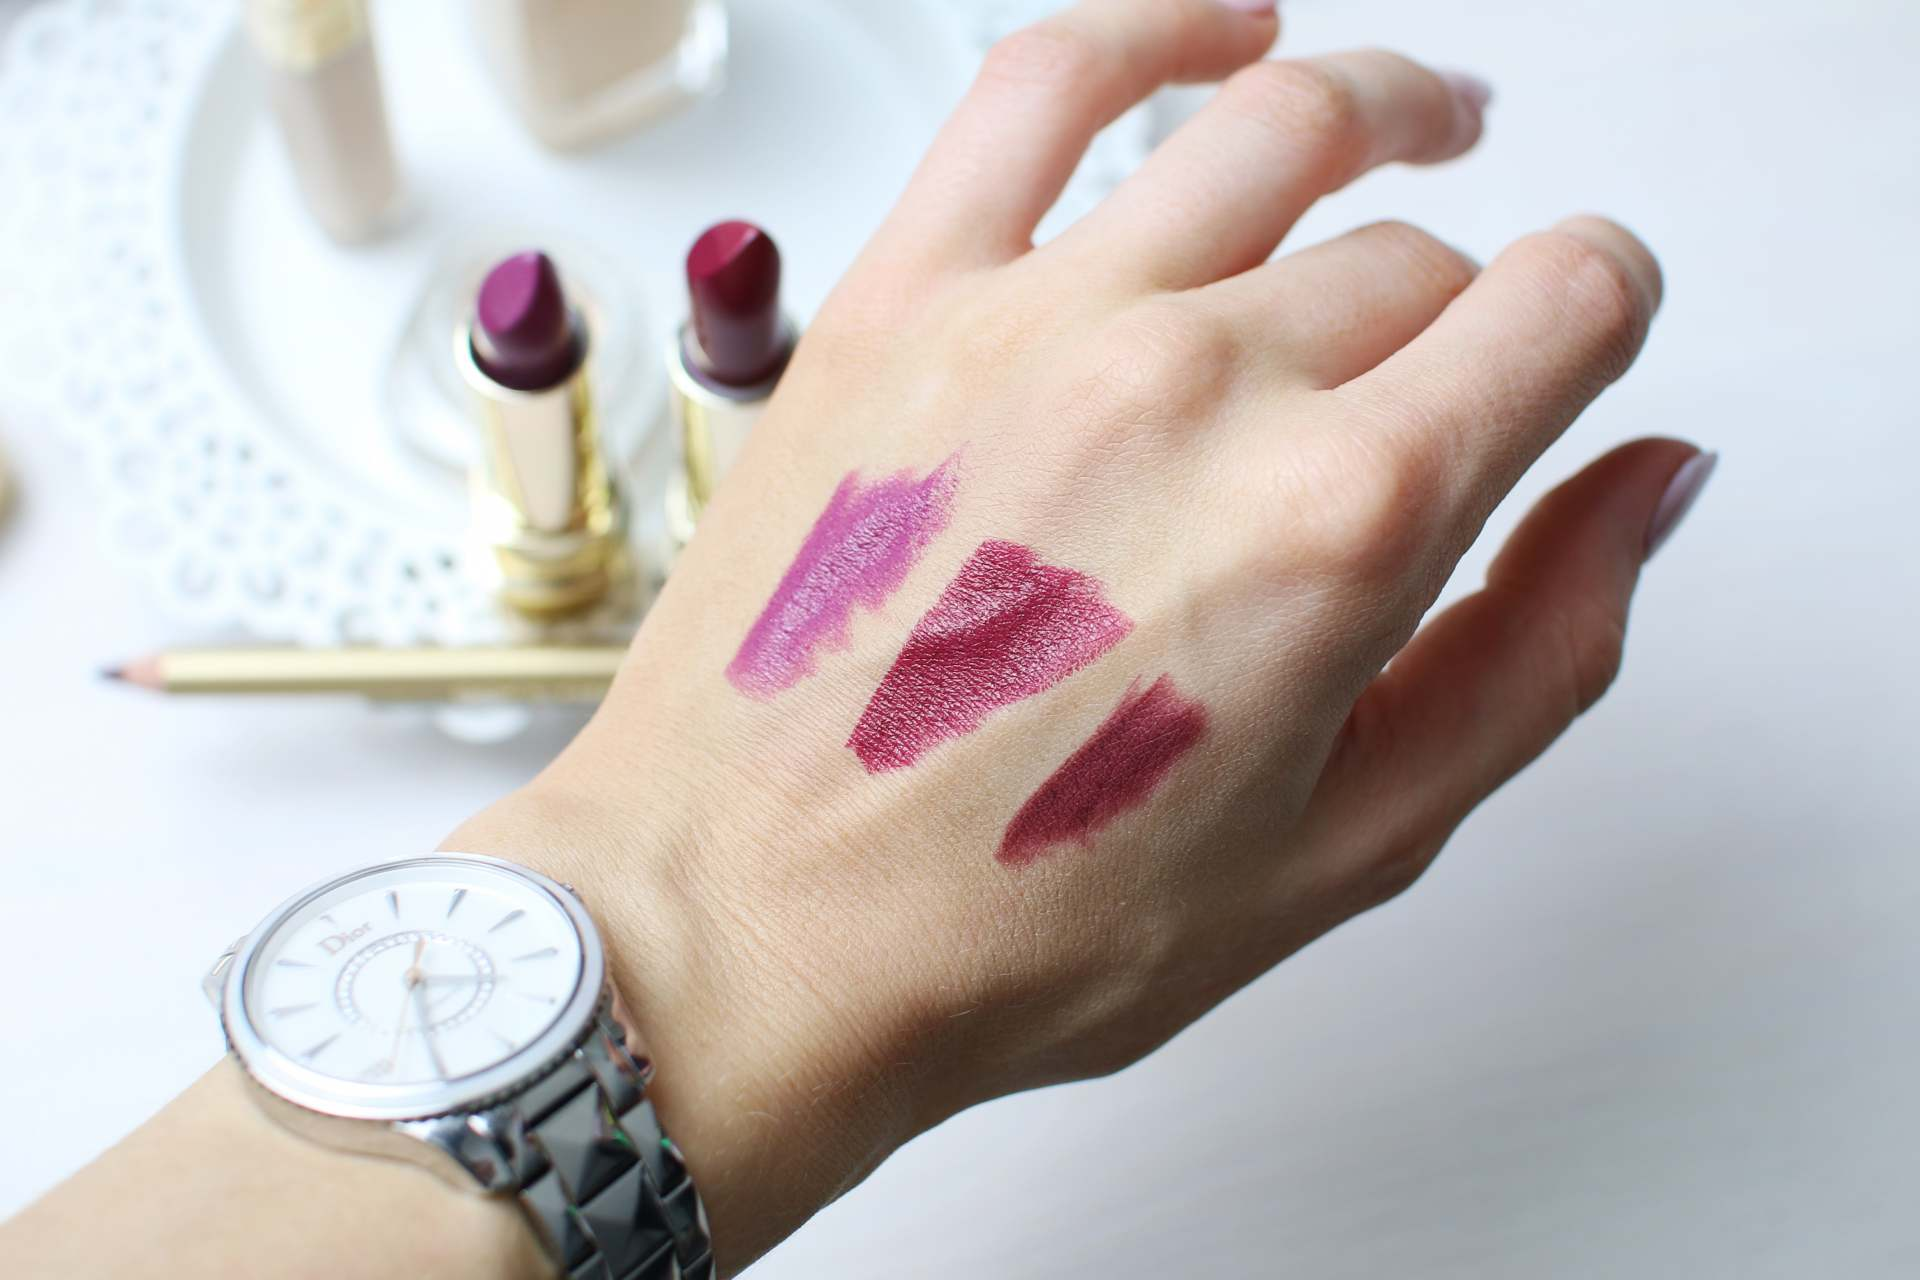 dolce and gabanna beauty lipstick swatch inthefrow